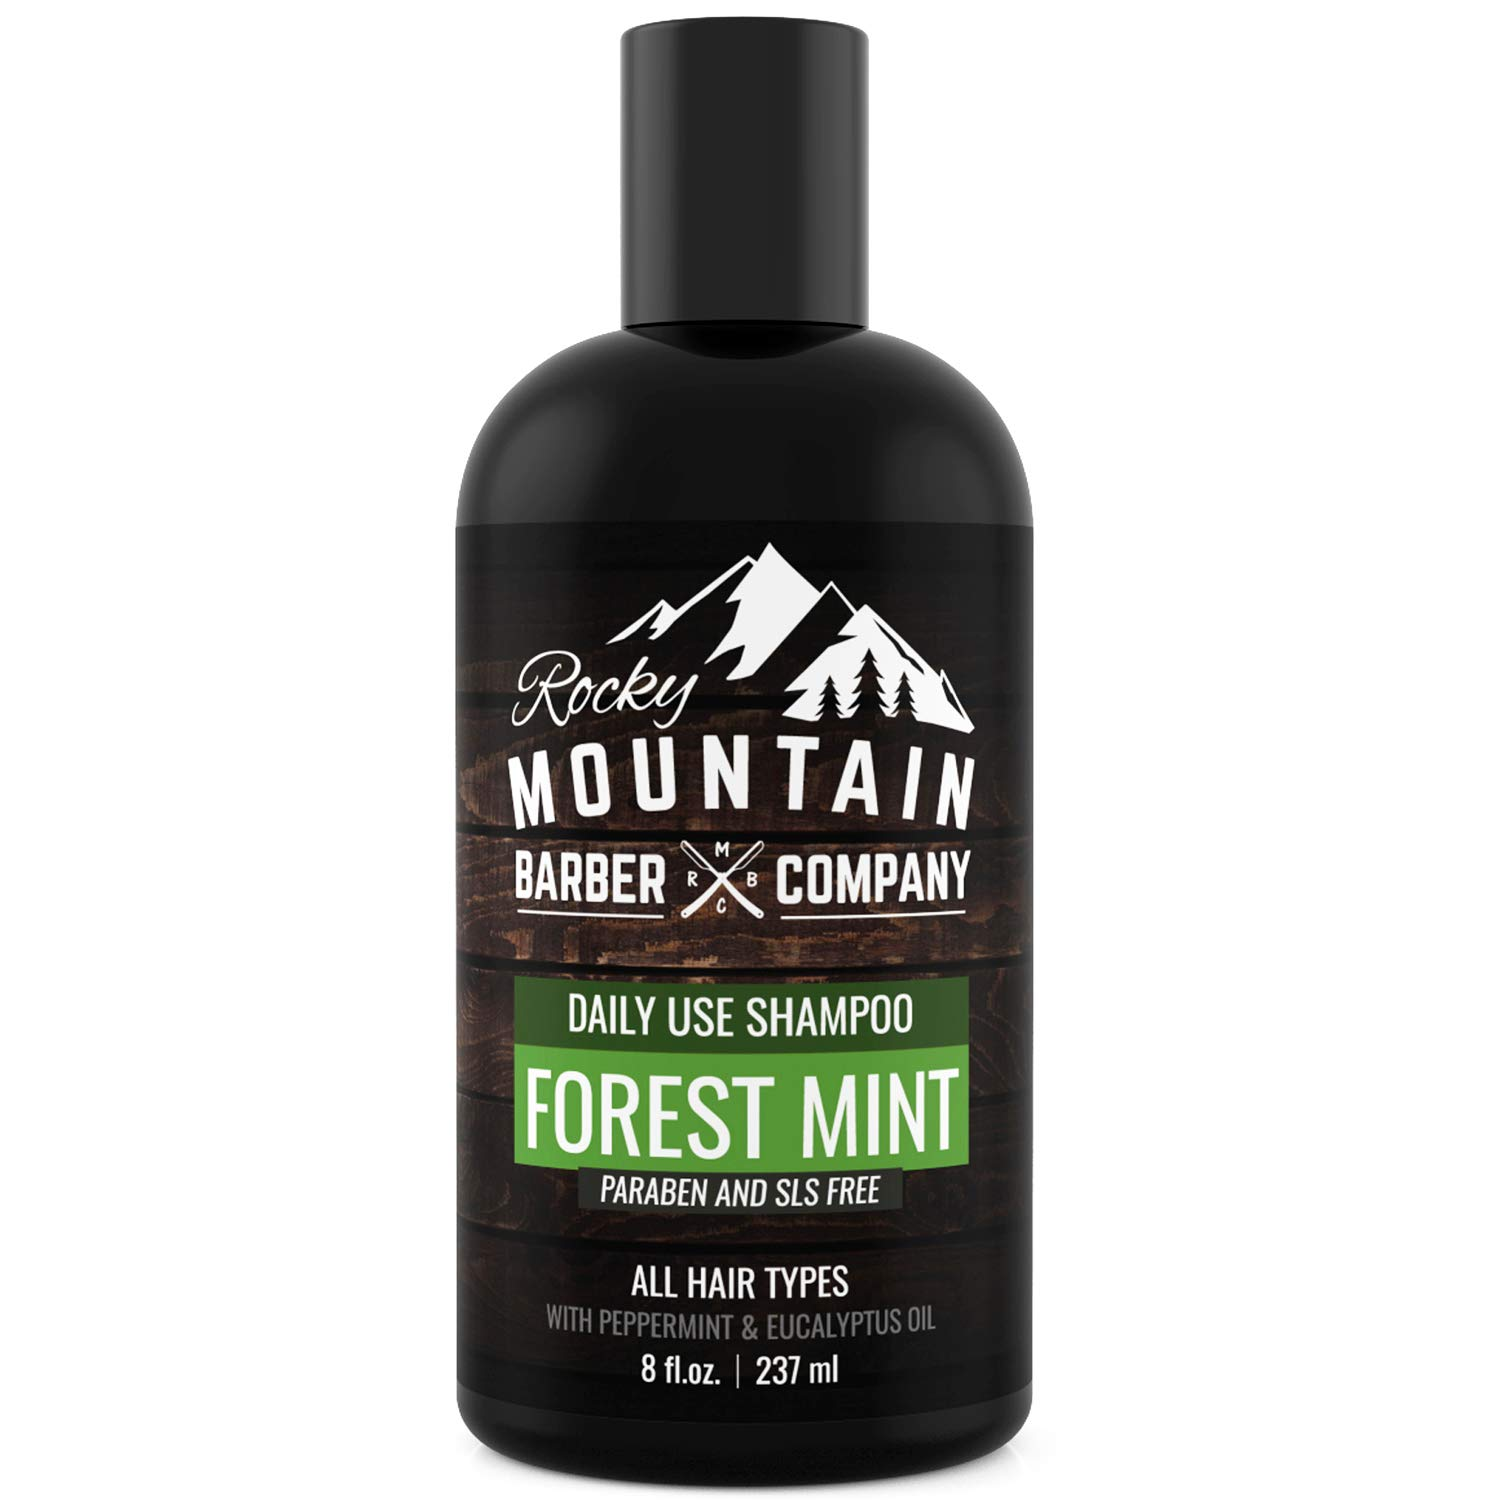 Men's Shampoo - Tea Tree Oil, Peppermint & Eucalyptus for All Hair Types – Prevents Dry Itchy Scalp – Paraben, SLS & DEA Free - 8oz - by Rocky Mountain Barber Company